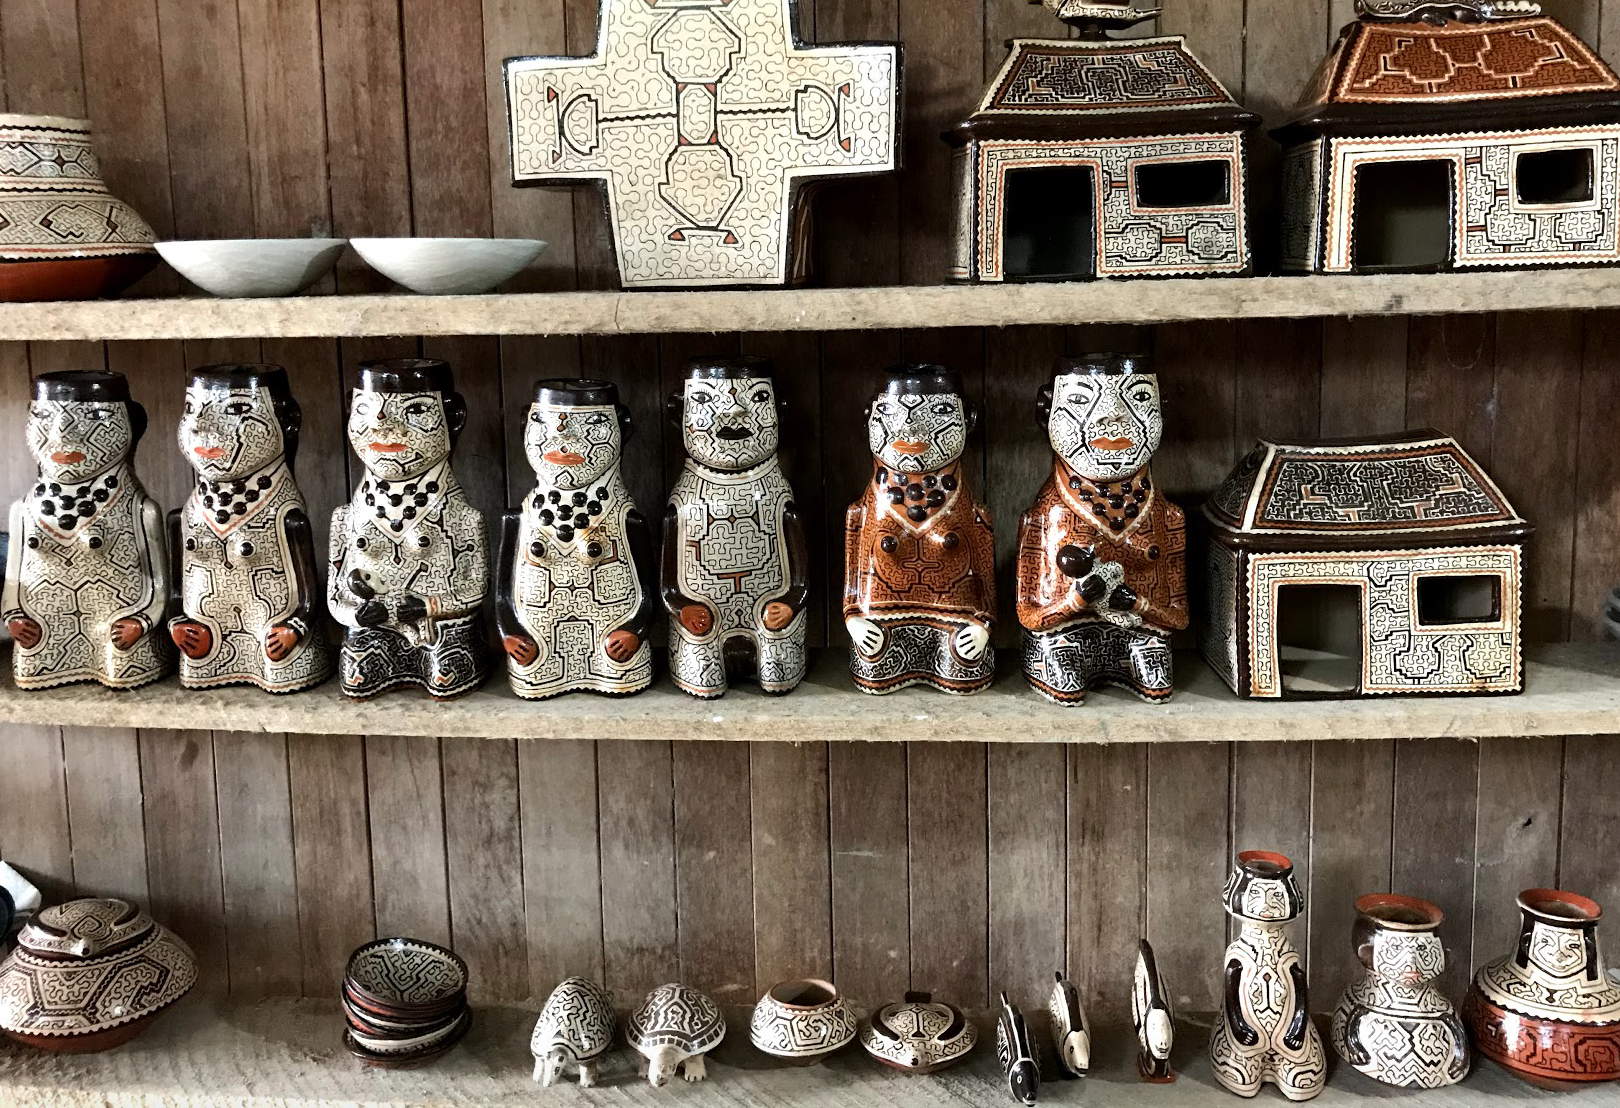 Some of the beautiful creations! There is such diversity in the items made, but all are so unique and different. I love how all of them are hand-made, showcasing the craft required to make the ceramics.